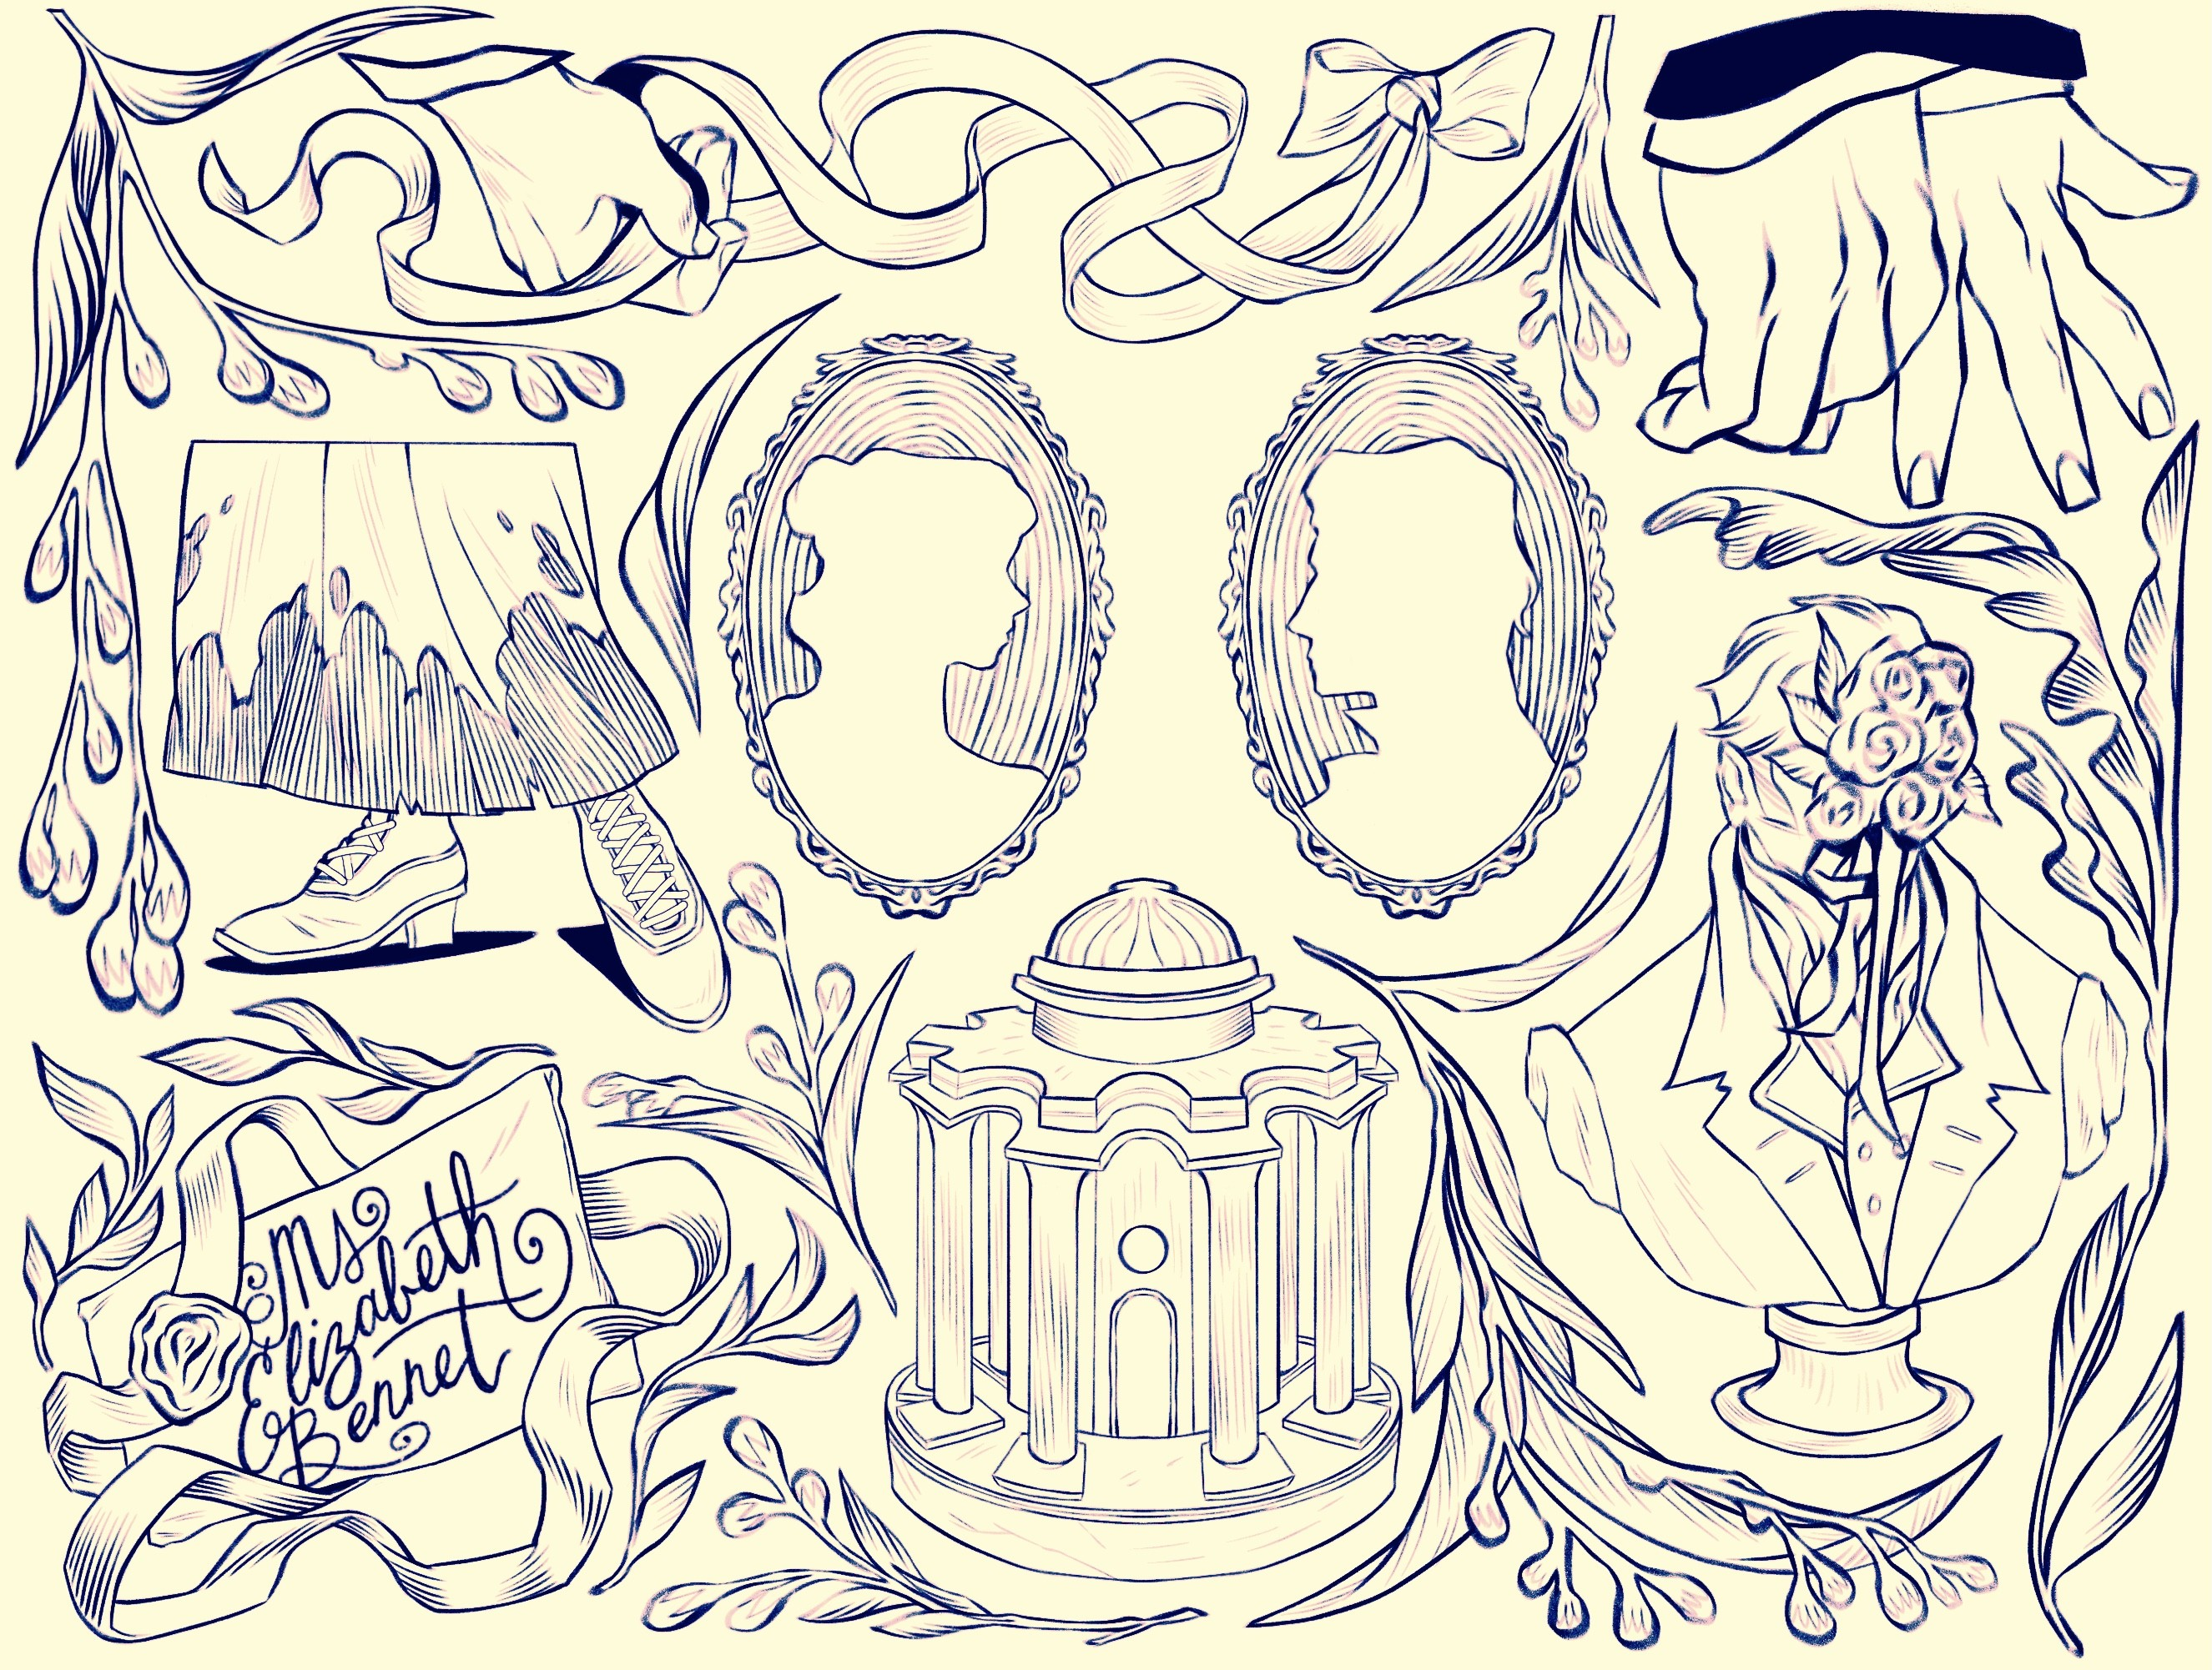 A tattoo flash sheet depicting various symbols and images from the book and movie Pride and Prejudice, including a hand flexing, a dirty skirt, silhouette images of Mr. Darcy and Elizabeth Bennet, a bust of Mr. Darcy, the gazebo, and the letter written to